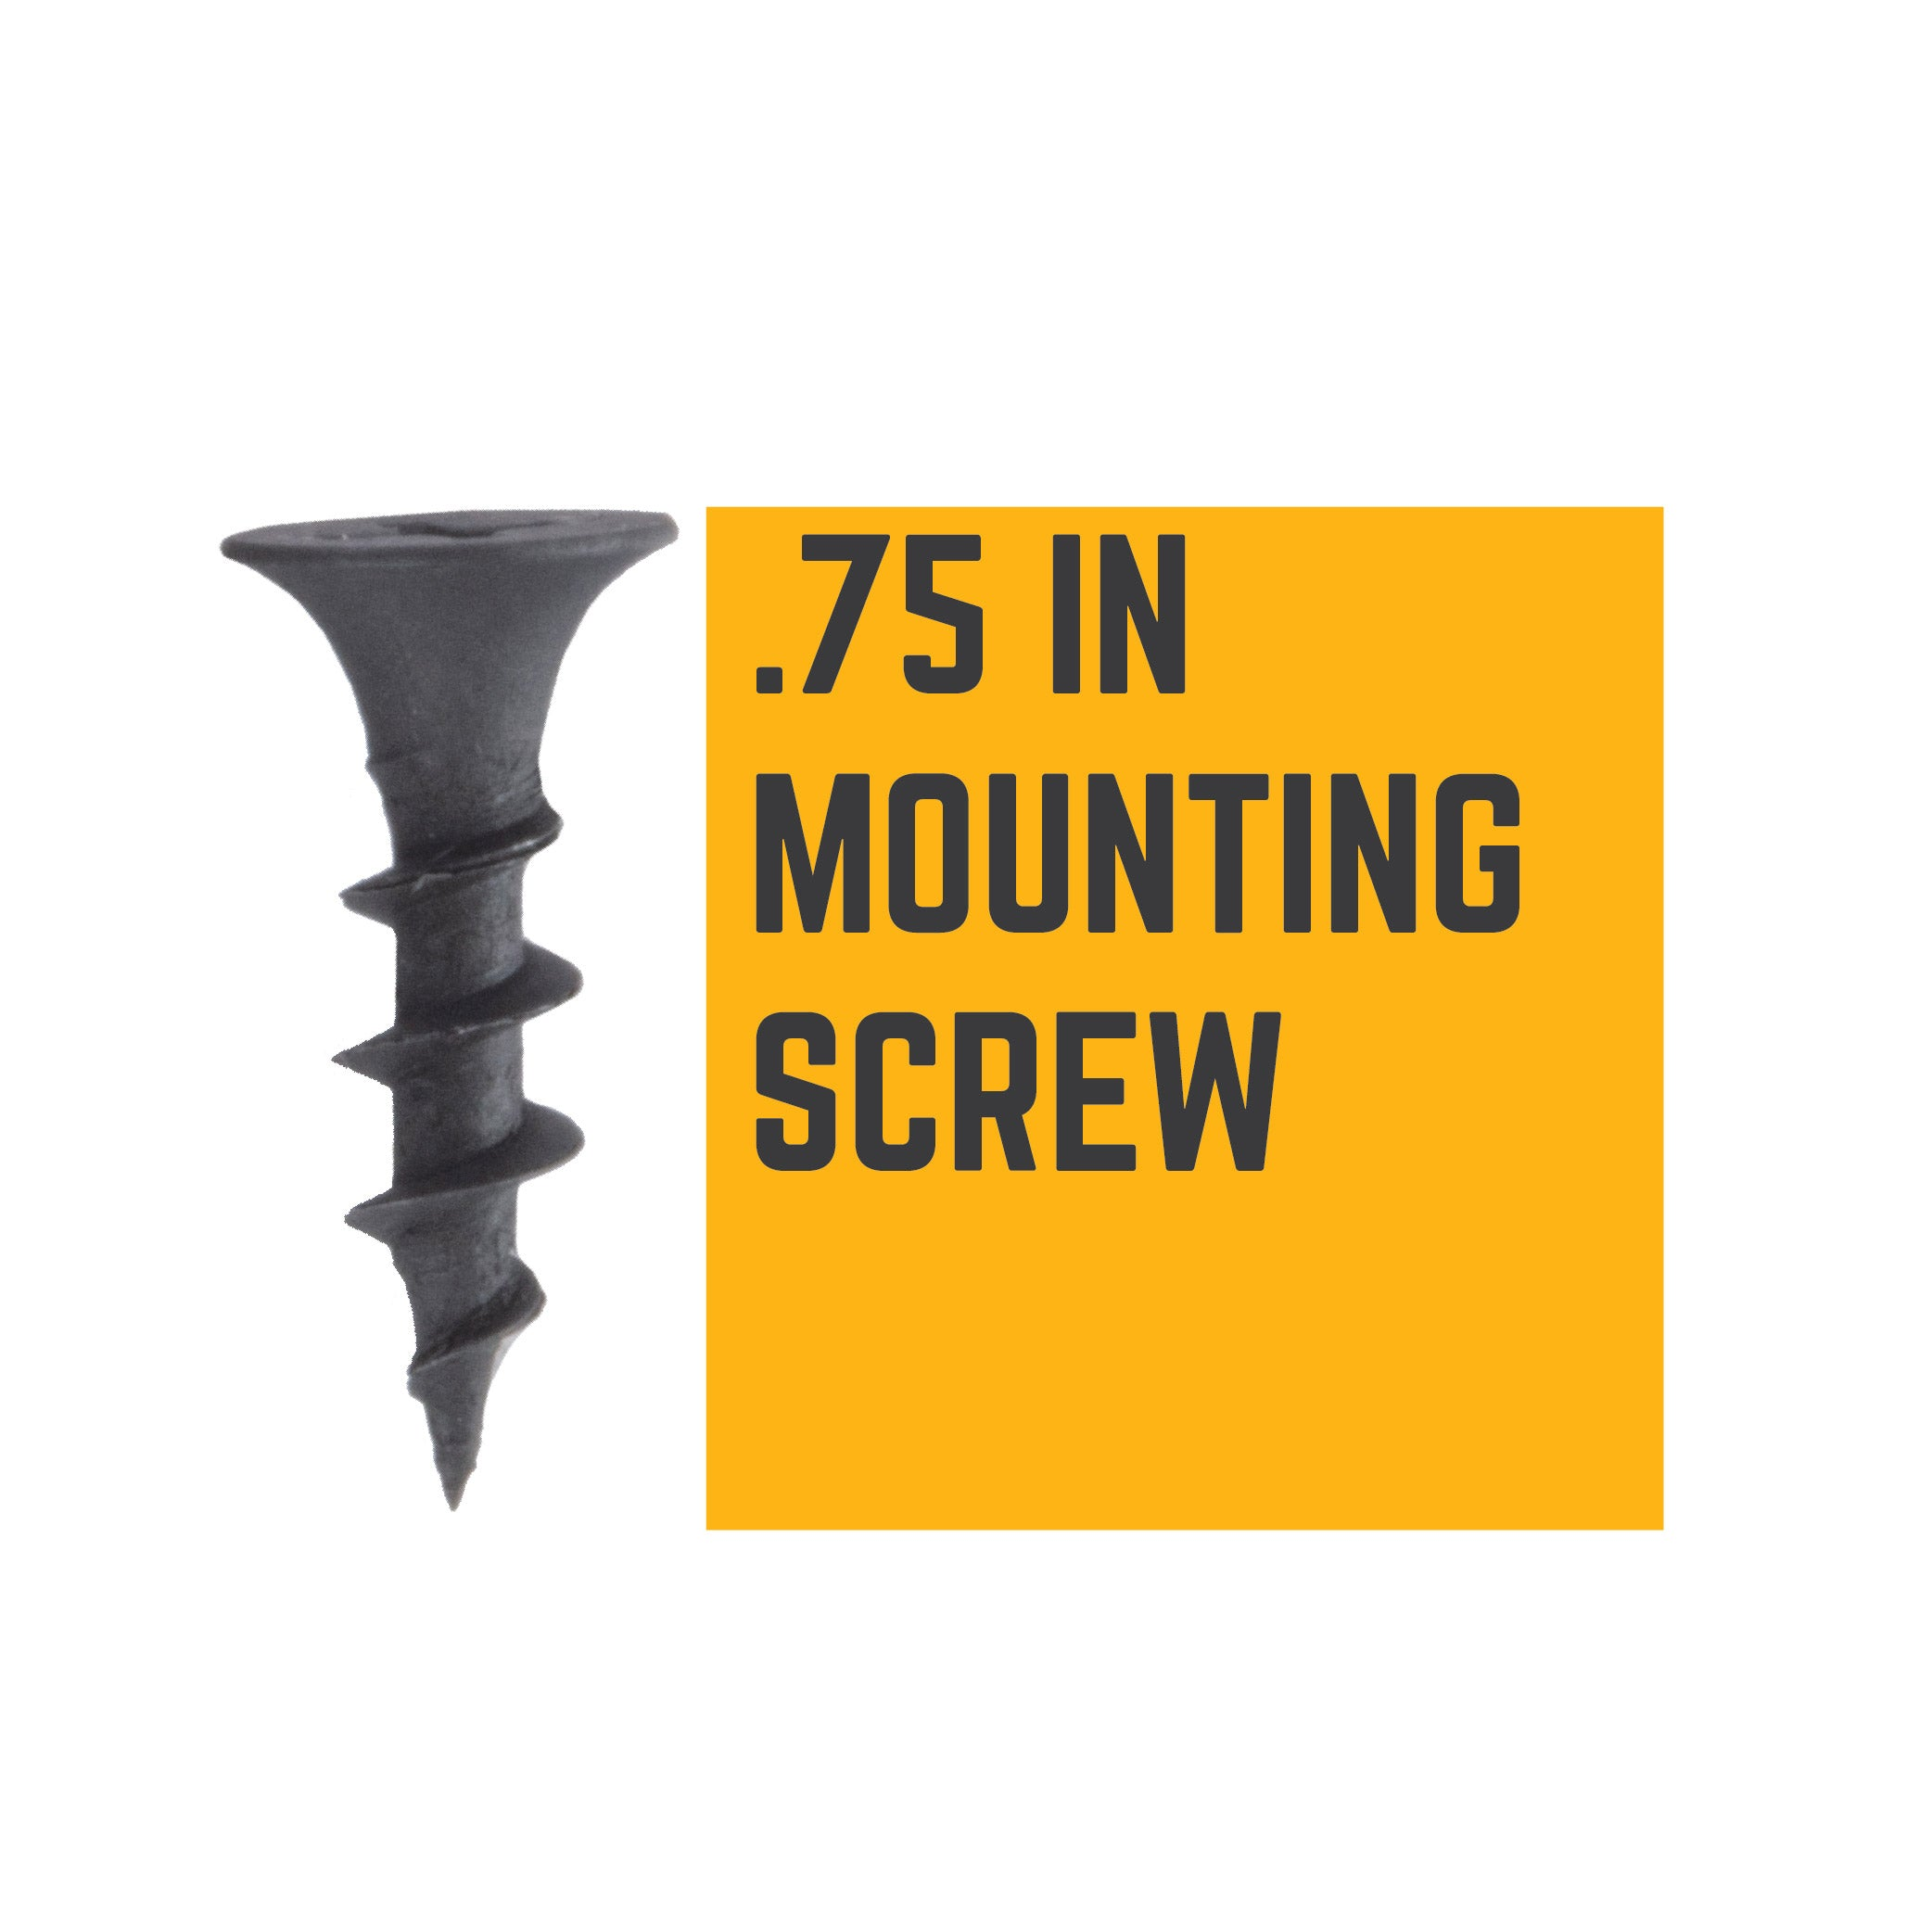 3/4 IN Shelf Mounting Screws